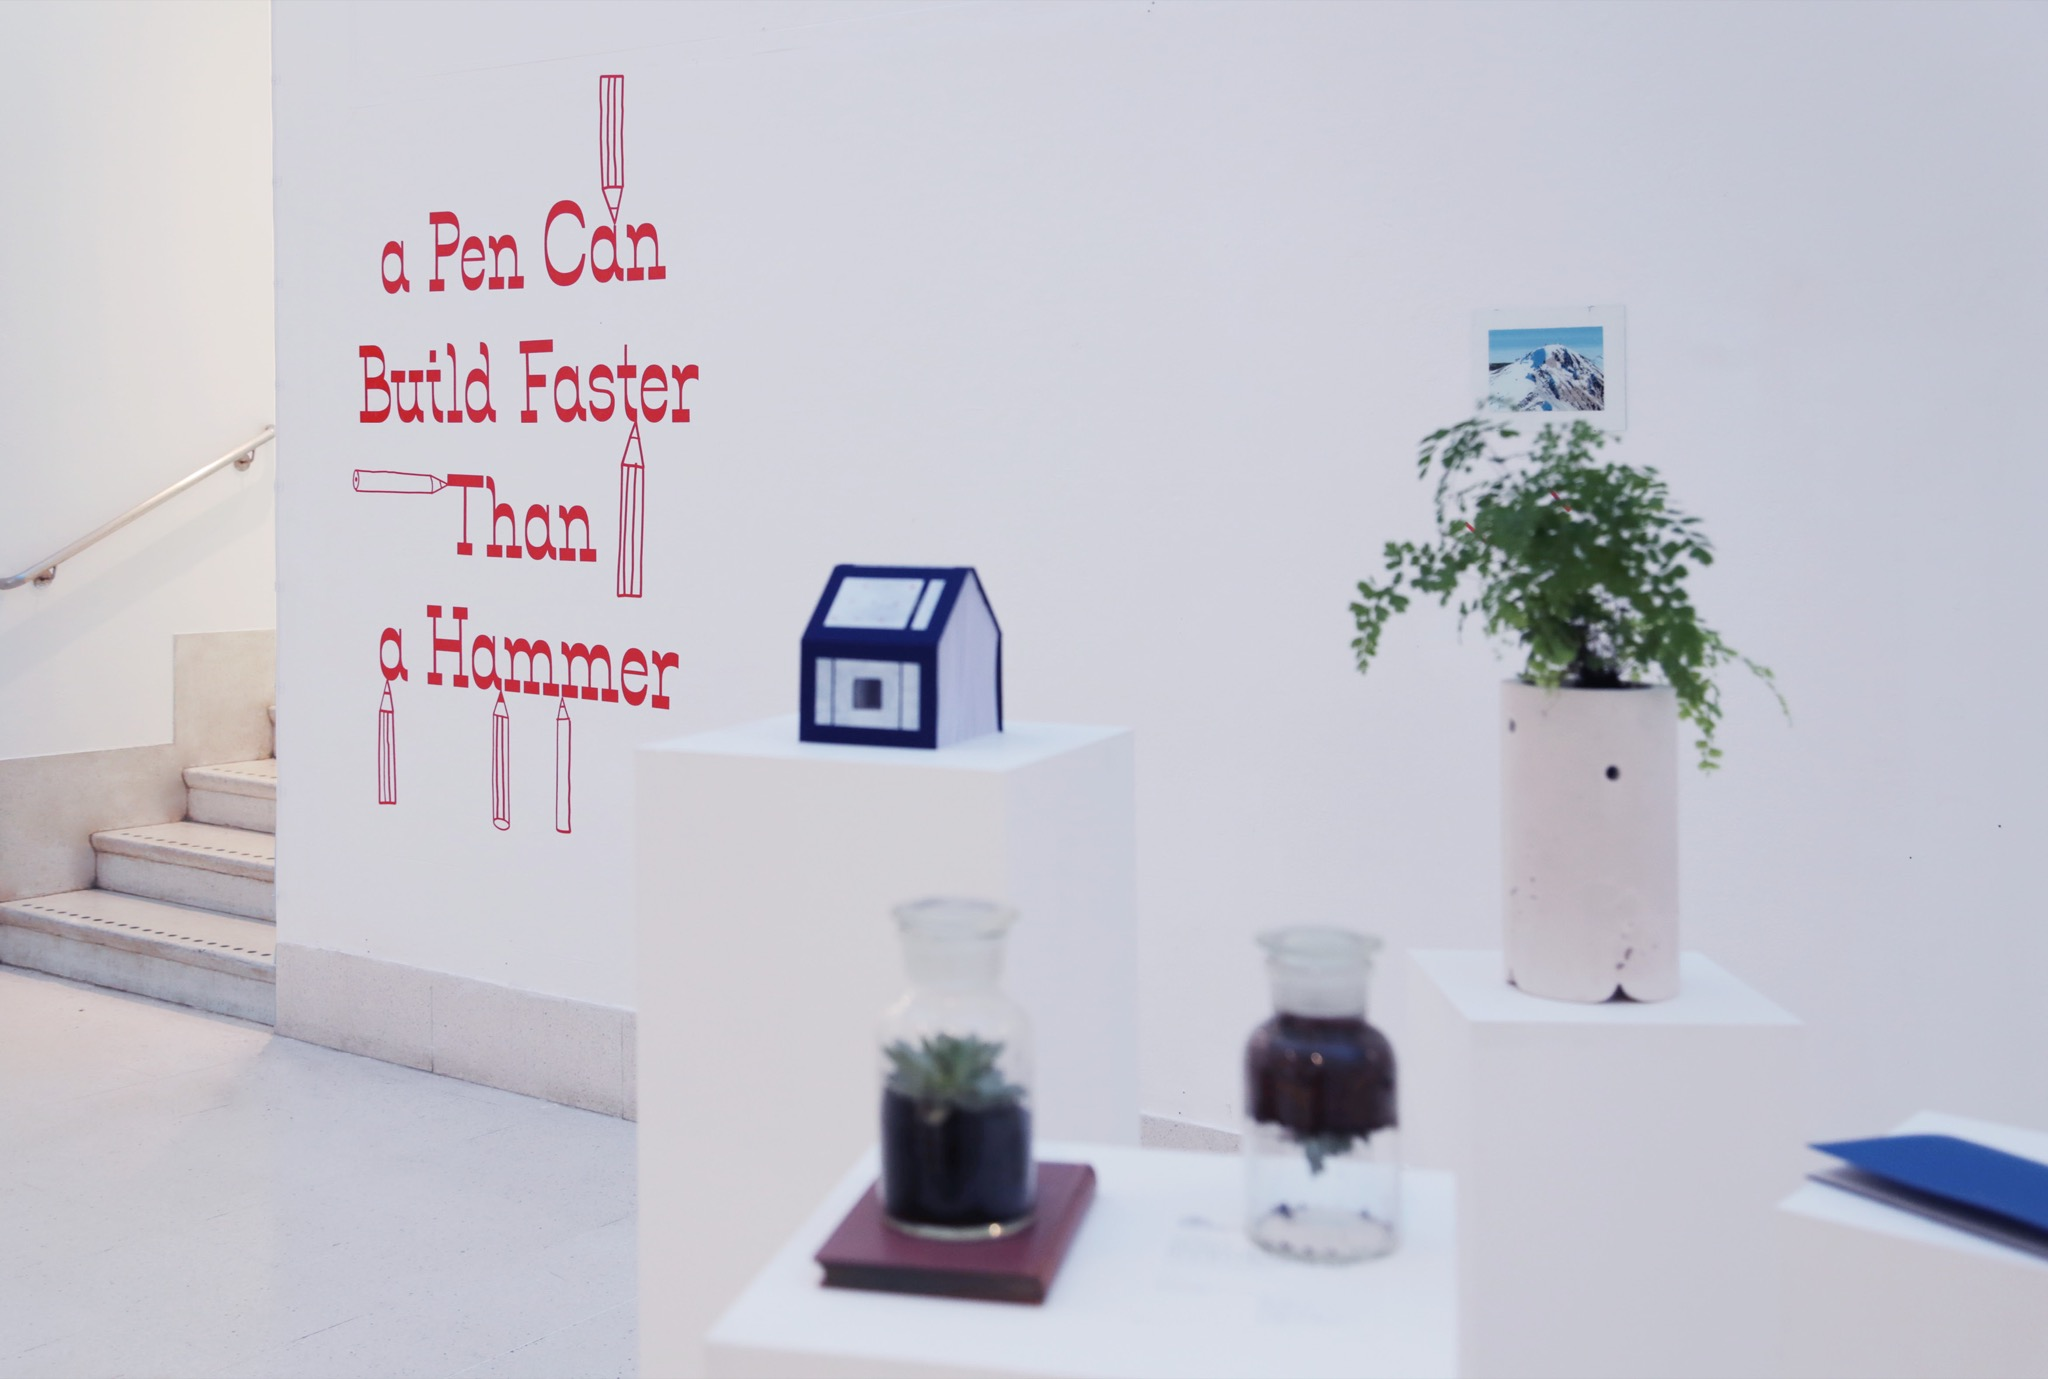 ill-informed Exhibition Signage